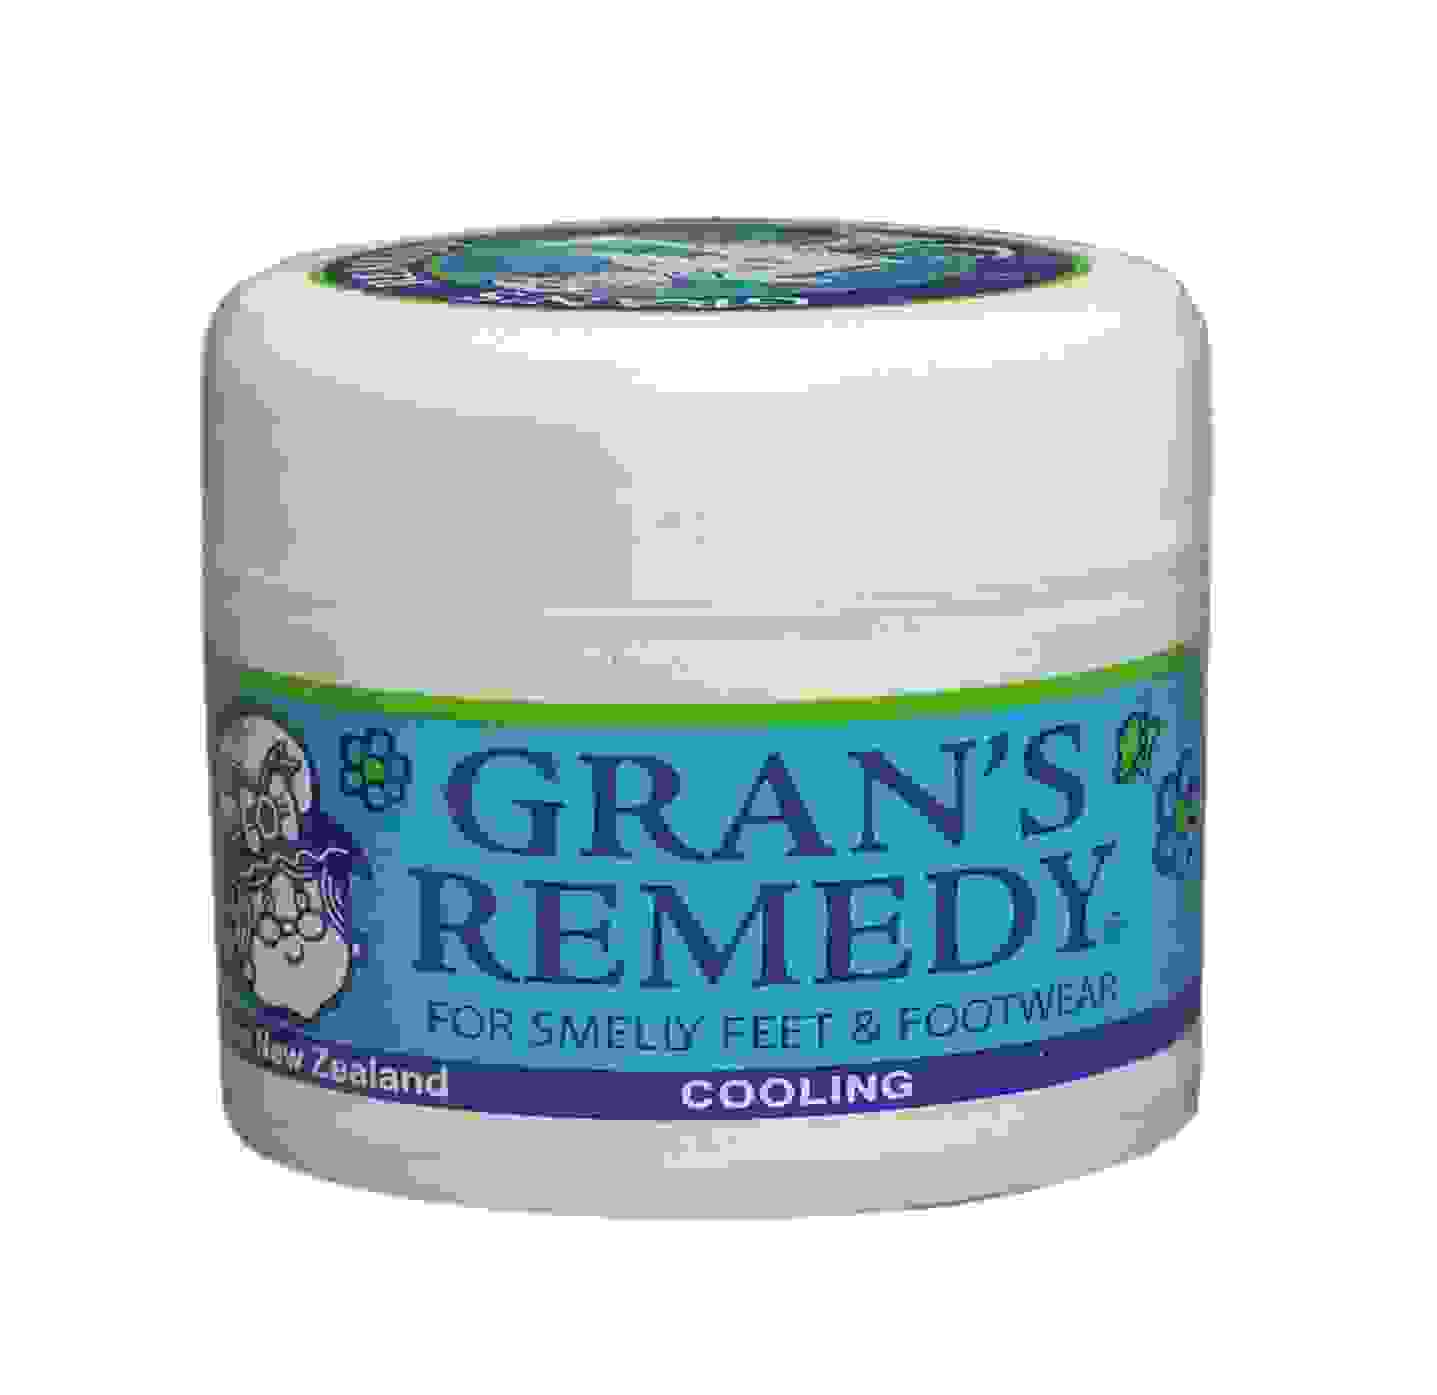 Grans Remedy Foot Powder Cooling Flavour (1.8oz/50g)